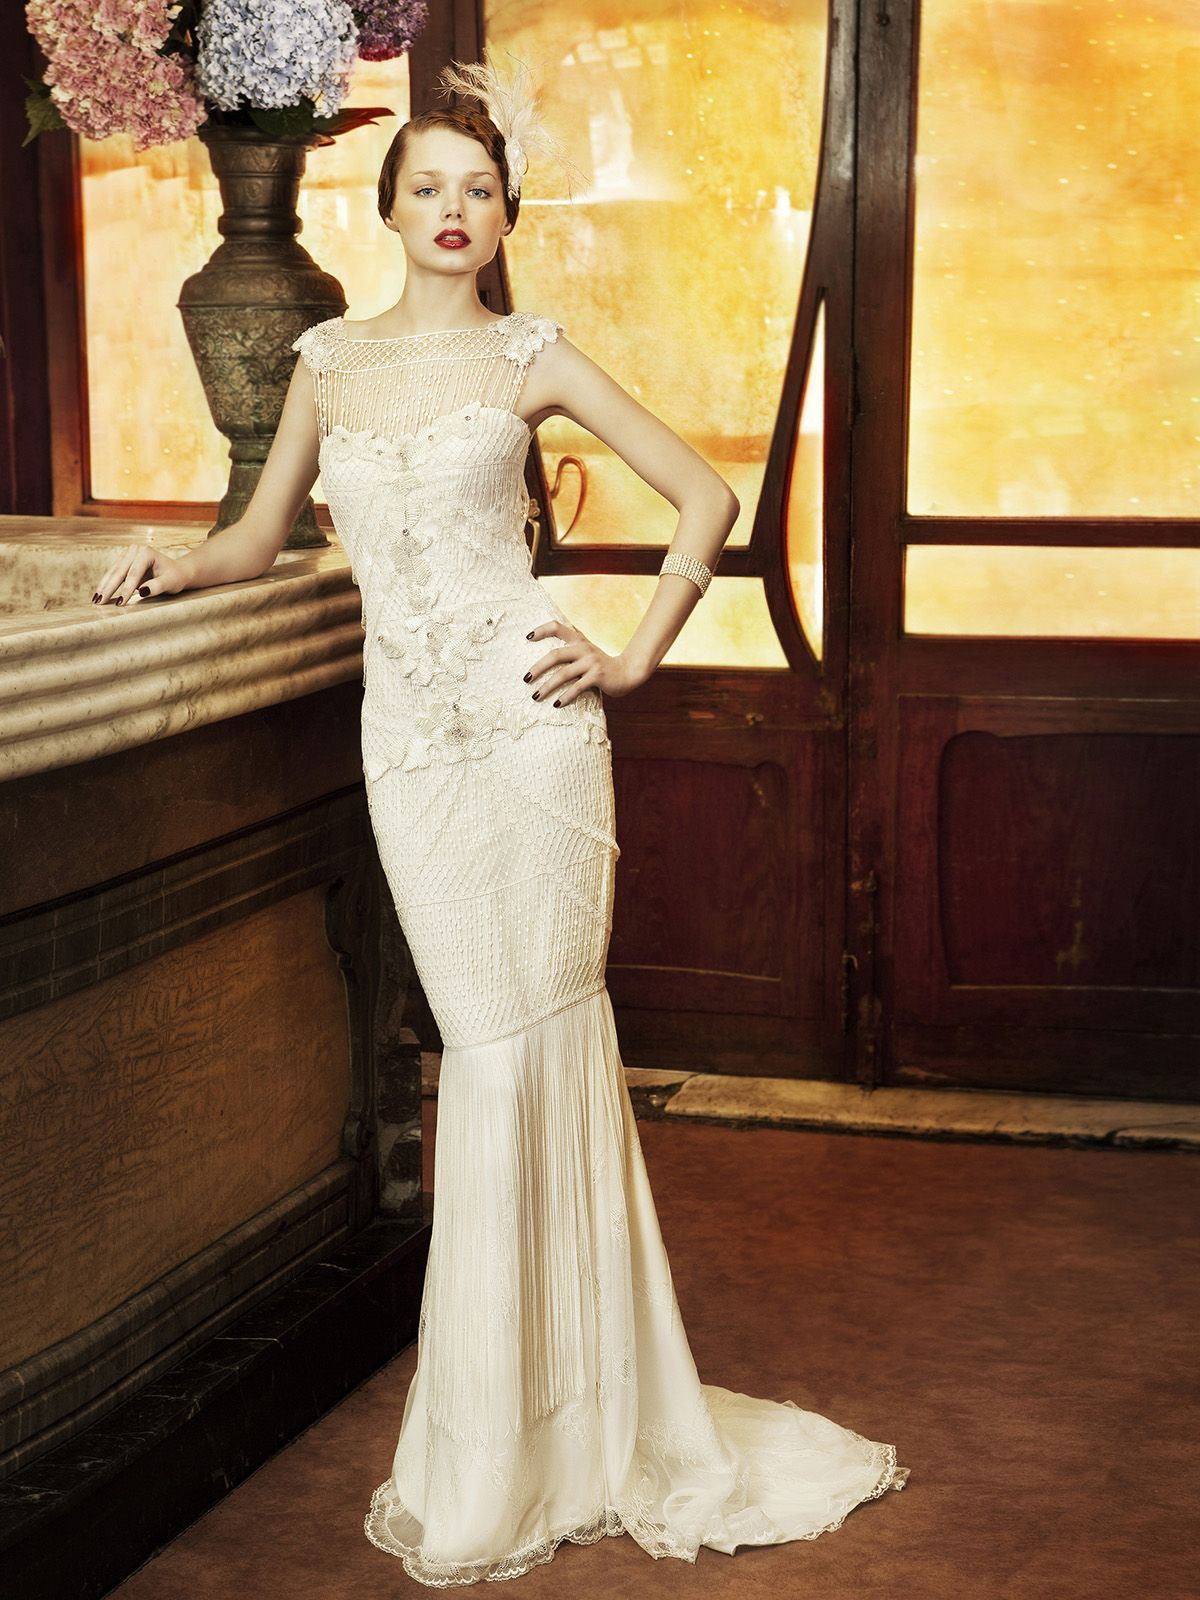 Yolan Cris 2017 Wedding Dresses From Revival Vintage Bridal Collection Copenhague Gown That S Awesome